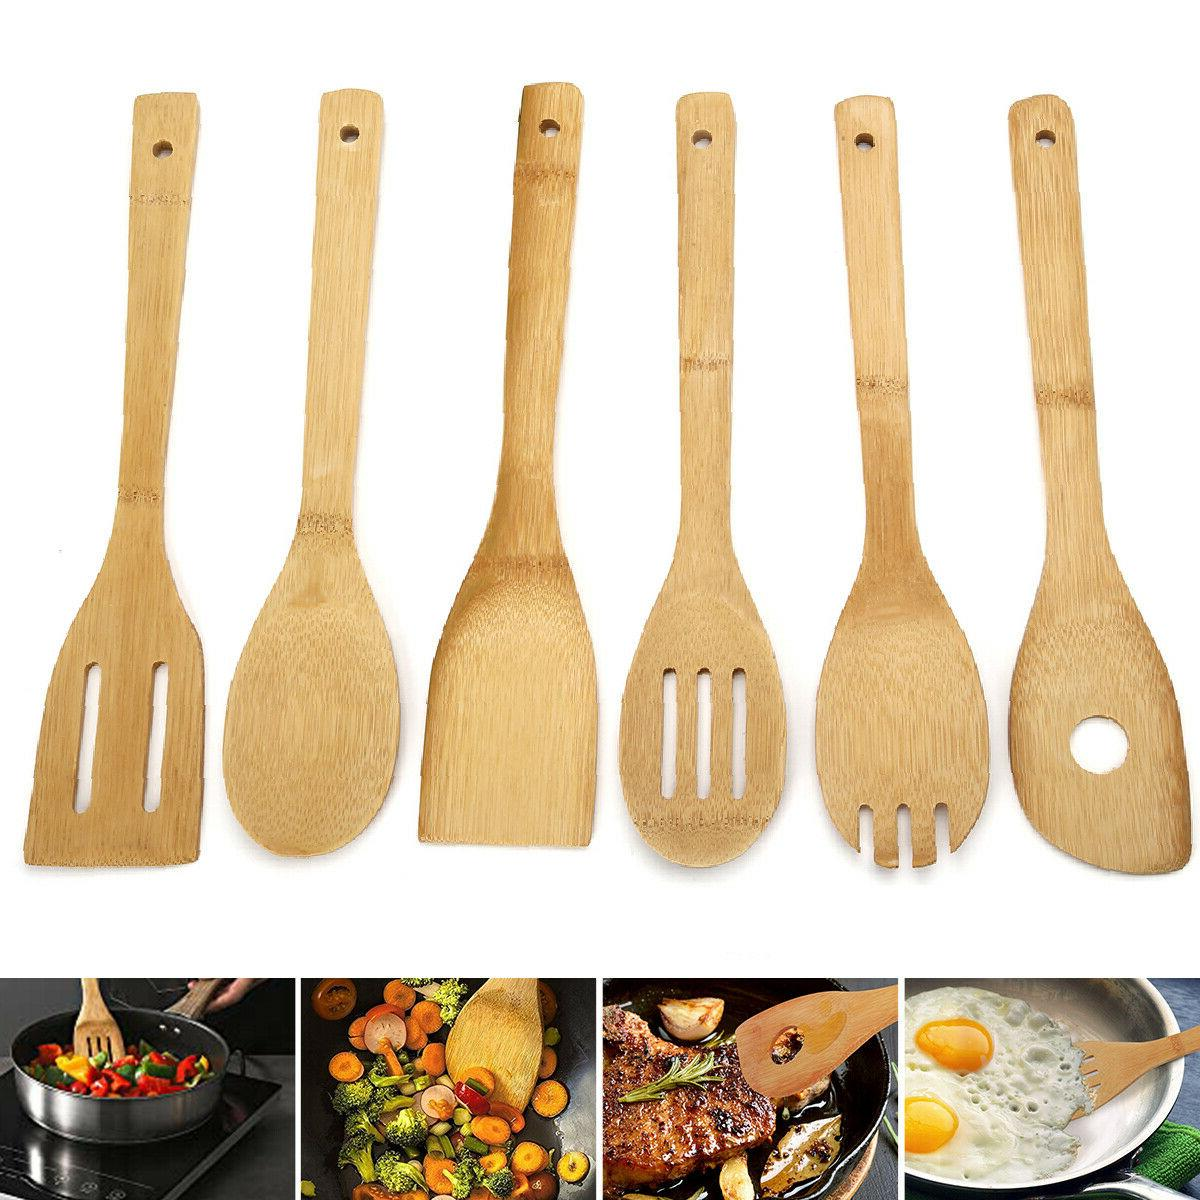 6 piece bamboo spatula set wooden spoons